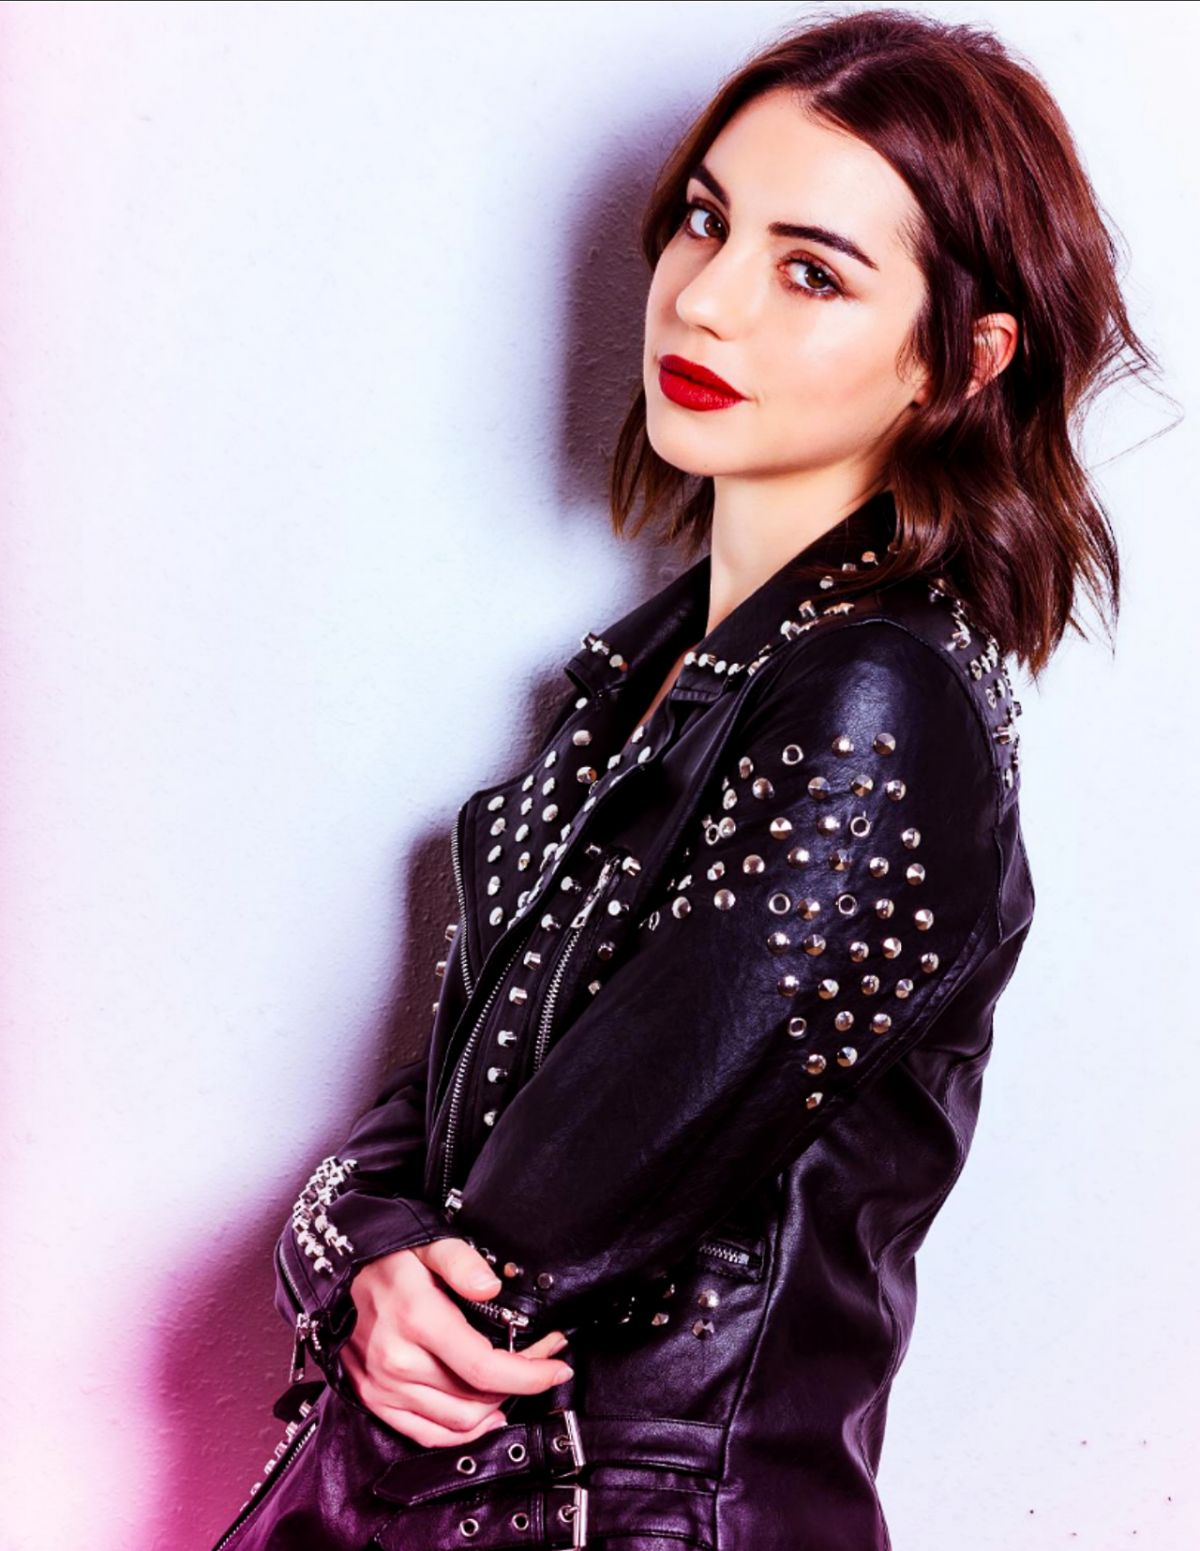 adelaide-kane-for-nkd-magazine-issue-79-january-2018-2.jpg